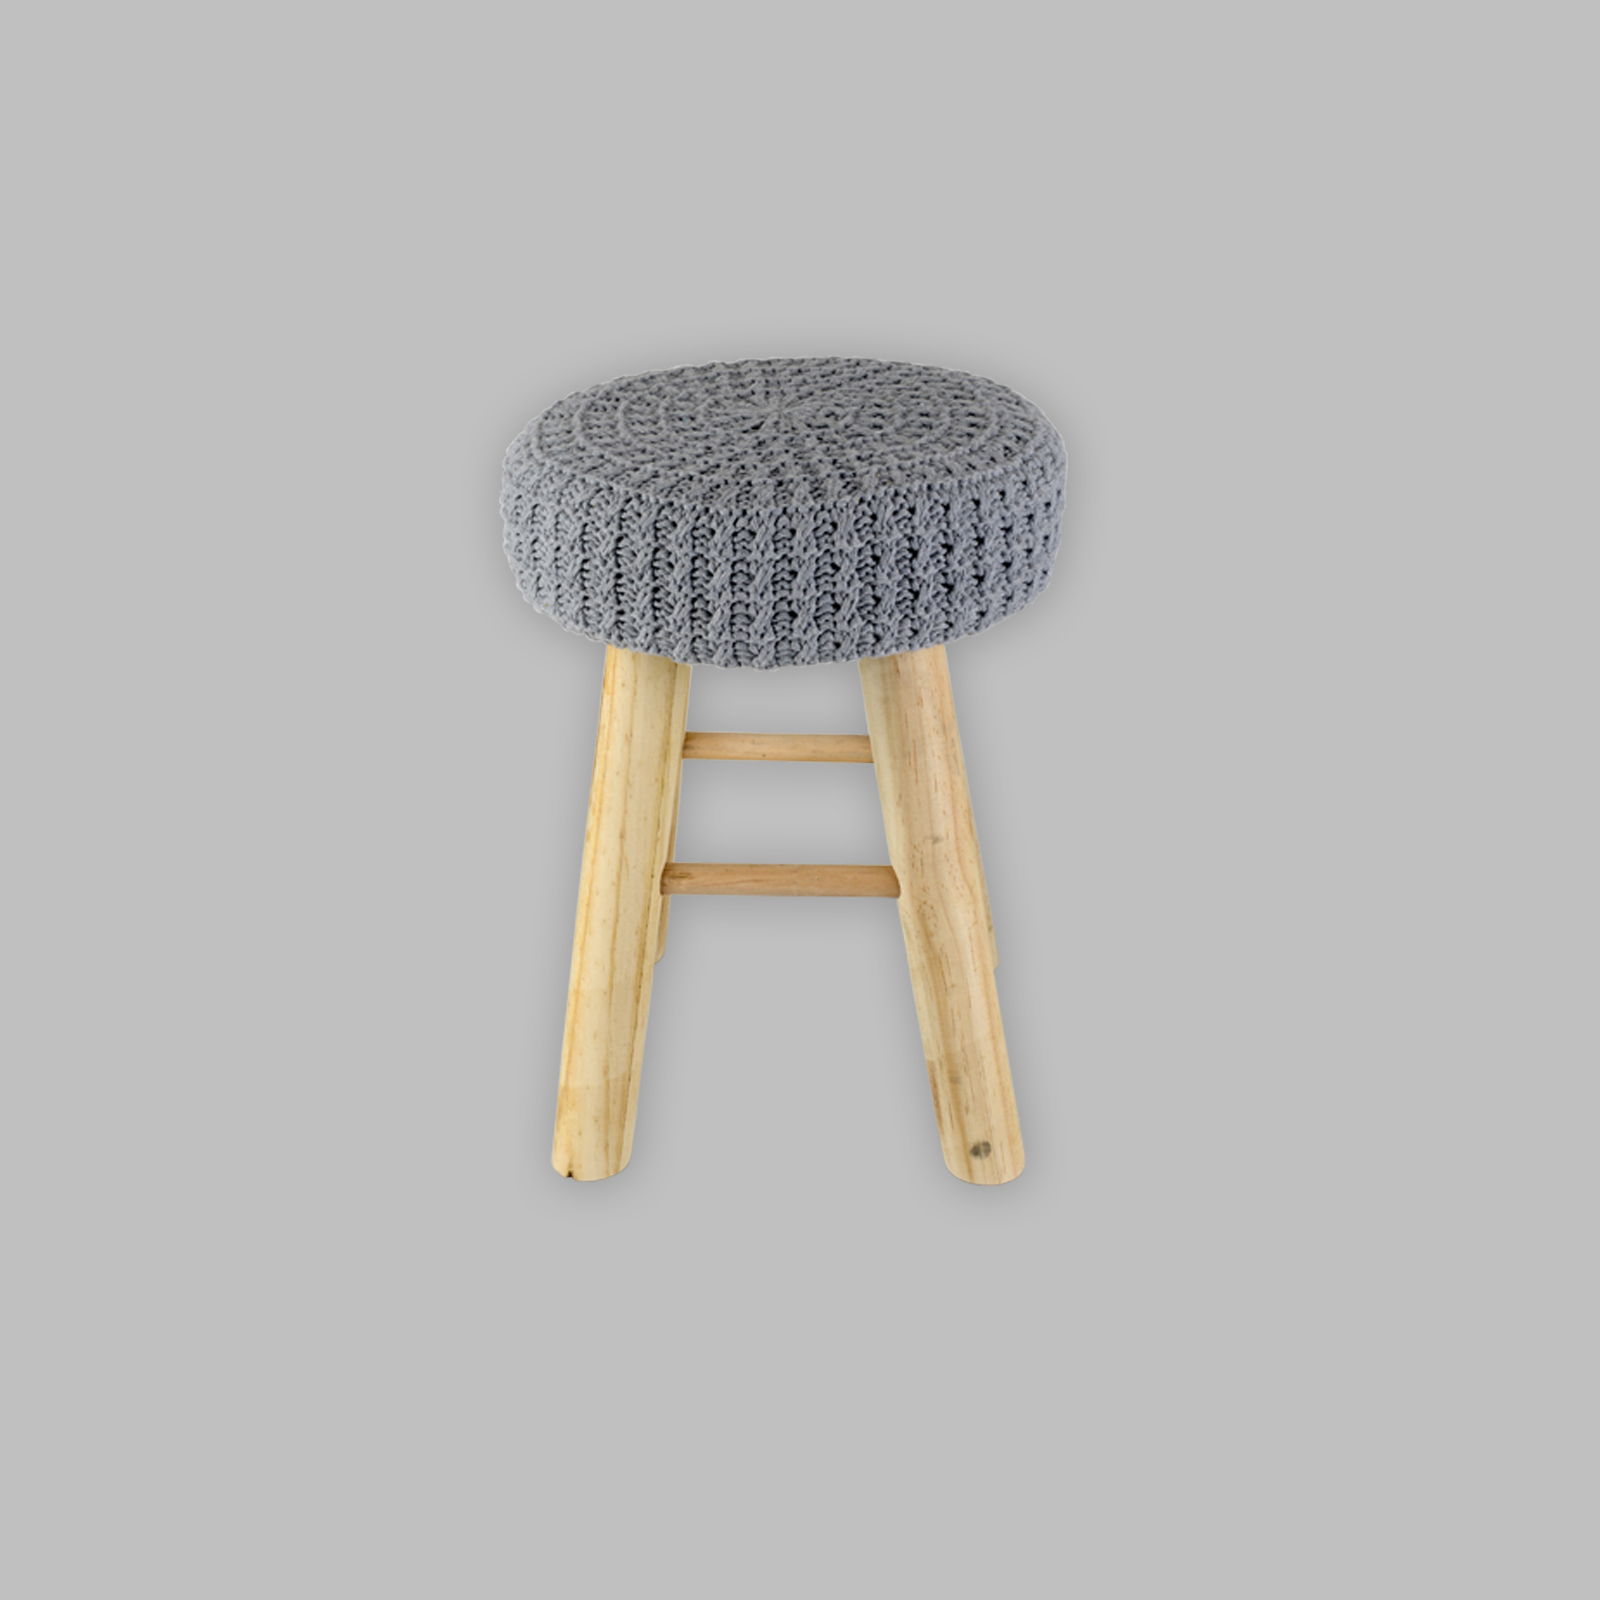 stool crocheted sitting shemel footrest wood effect chair. Black Bedroom Furniture Sets. Home Design Ideas